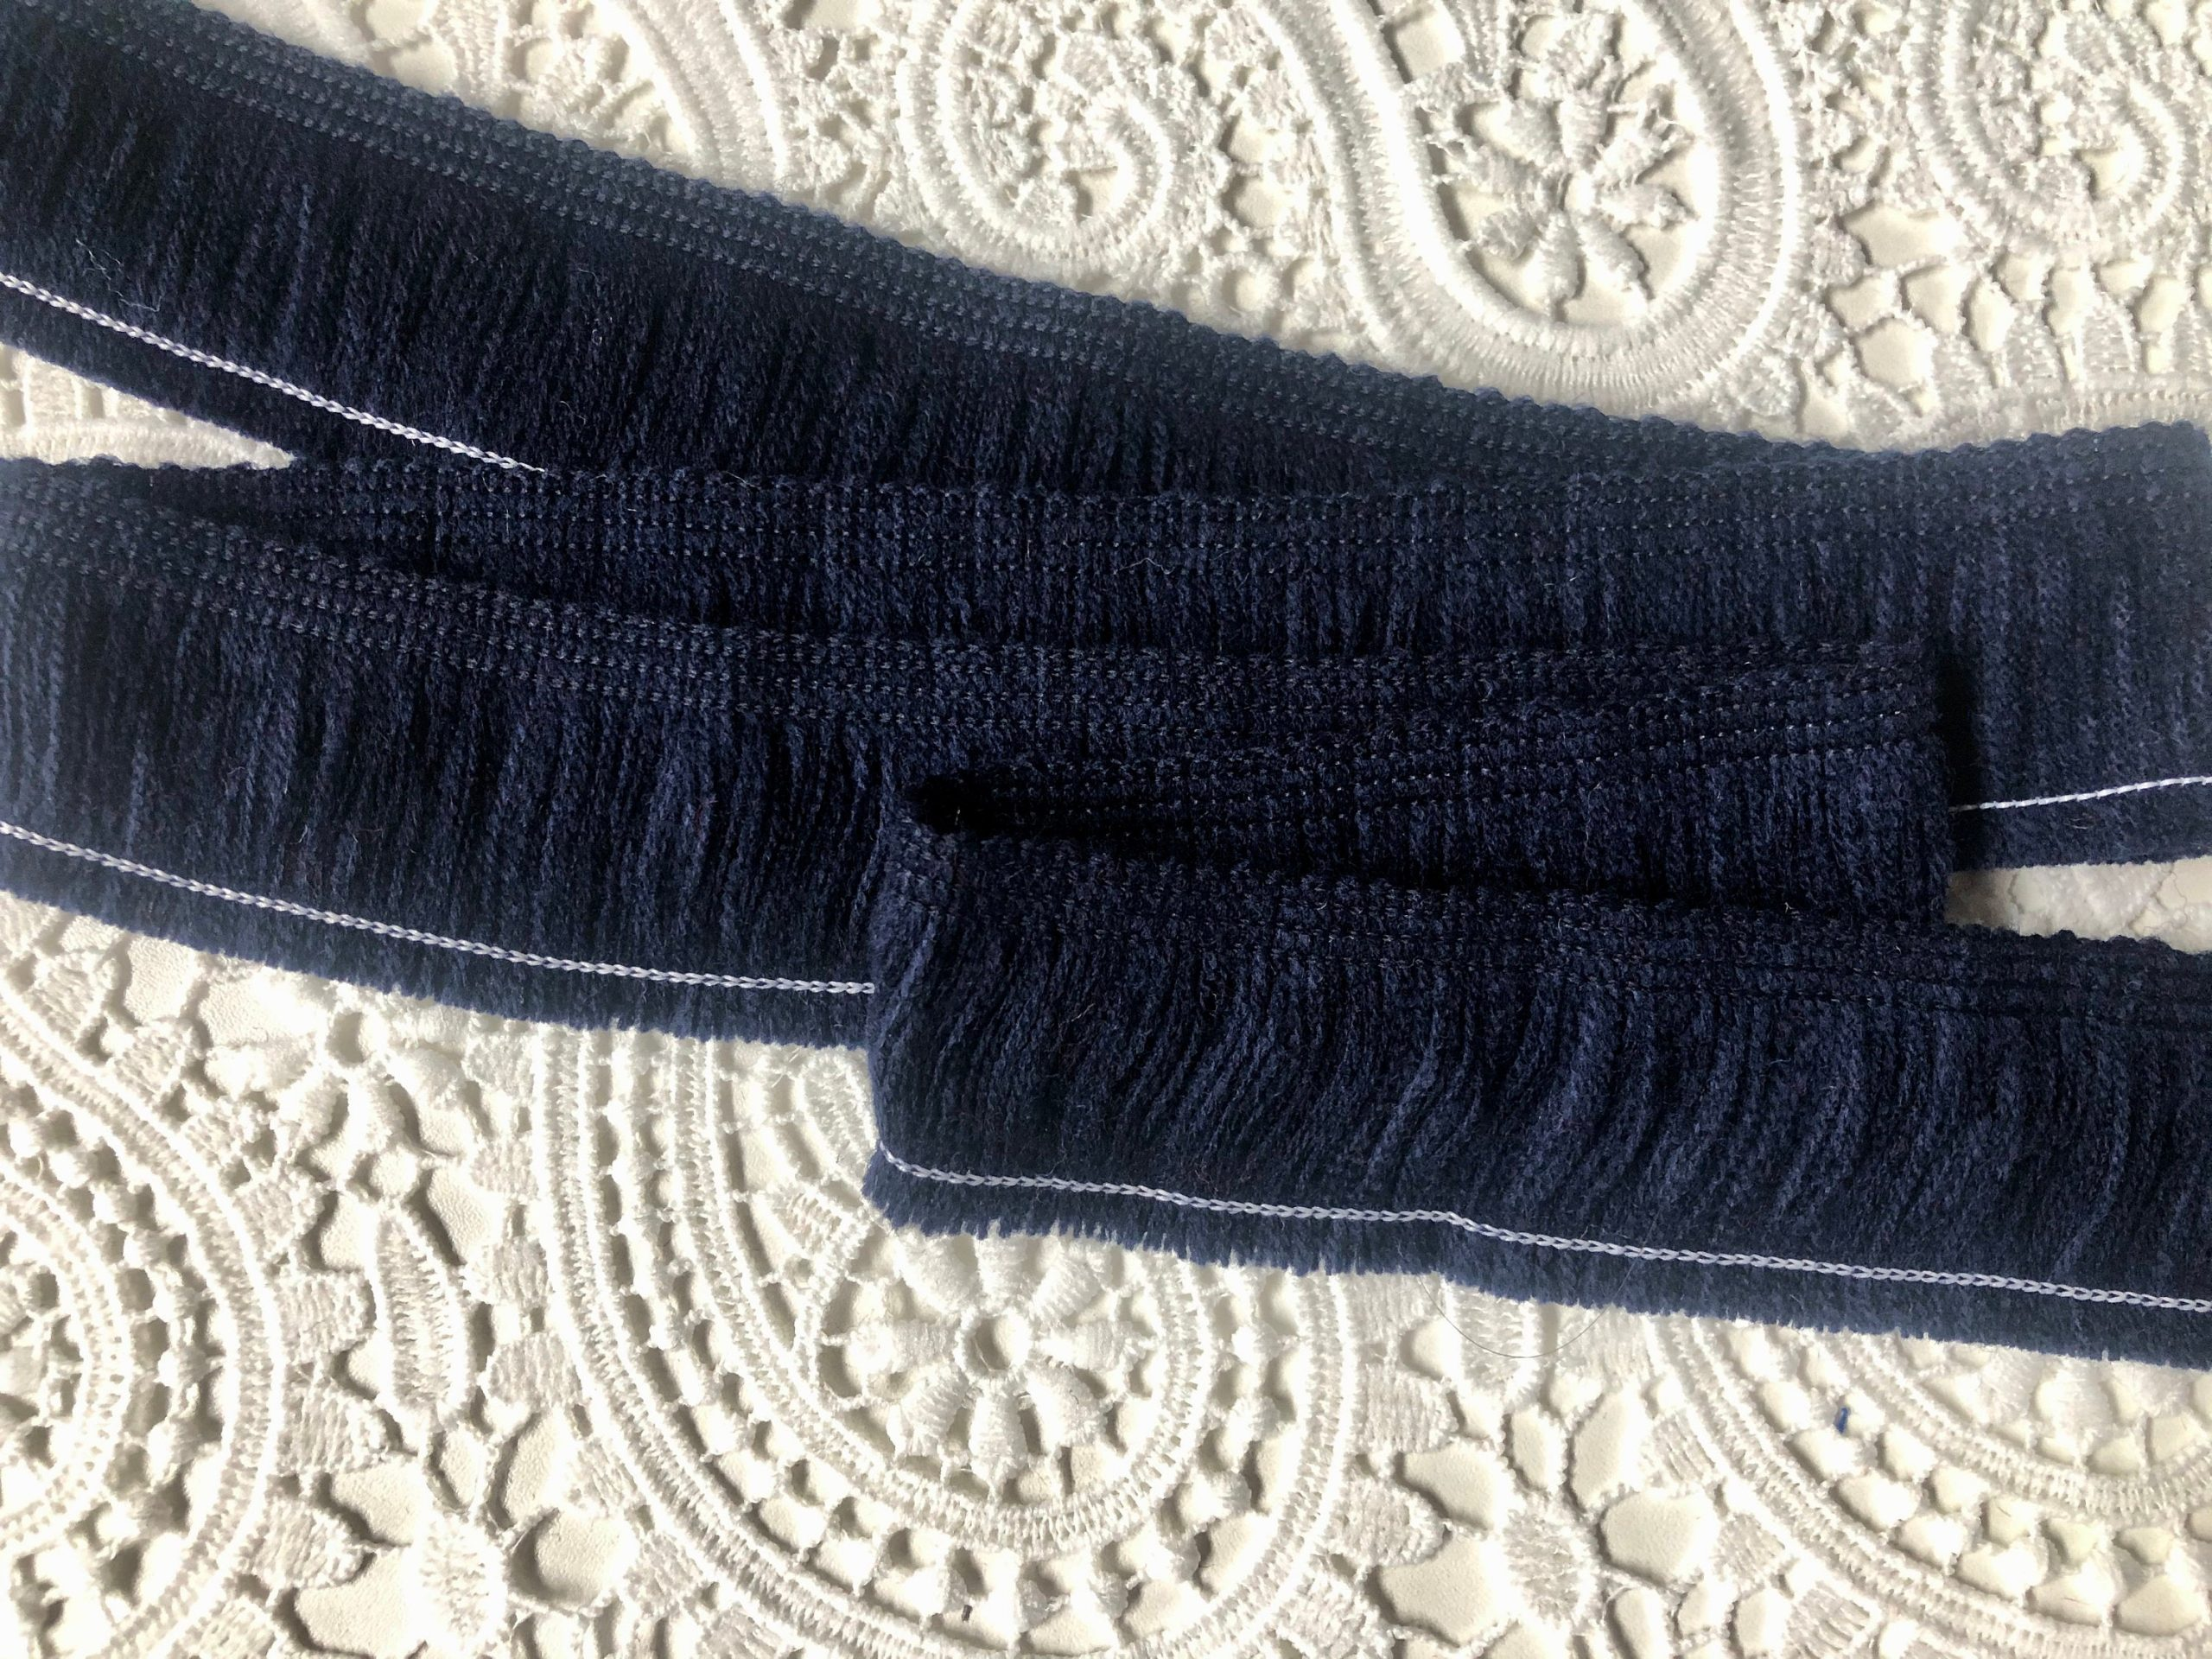 NAVY BLUE – Brush Fringe Tassels Textile Cut Pillow Trimming, Piping, Cushion Trim, Curtains, Home Decor – 40mm Wide – Any LENGTH